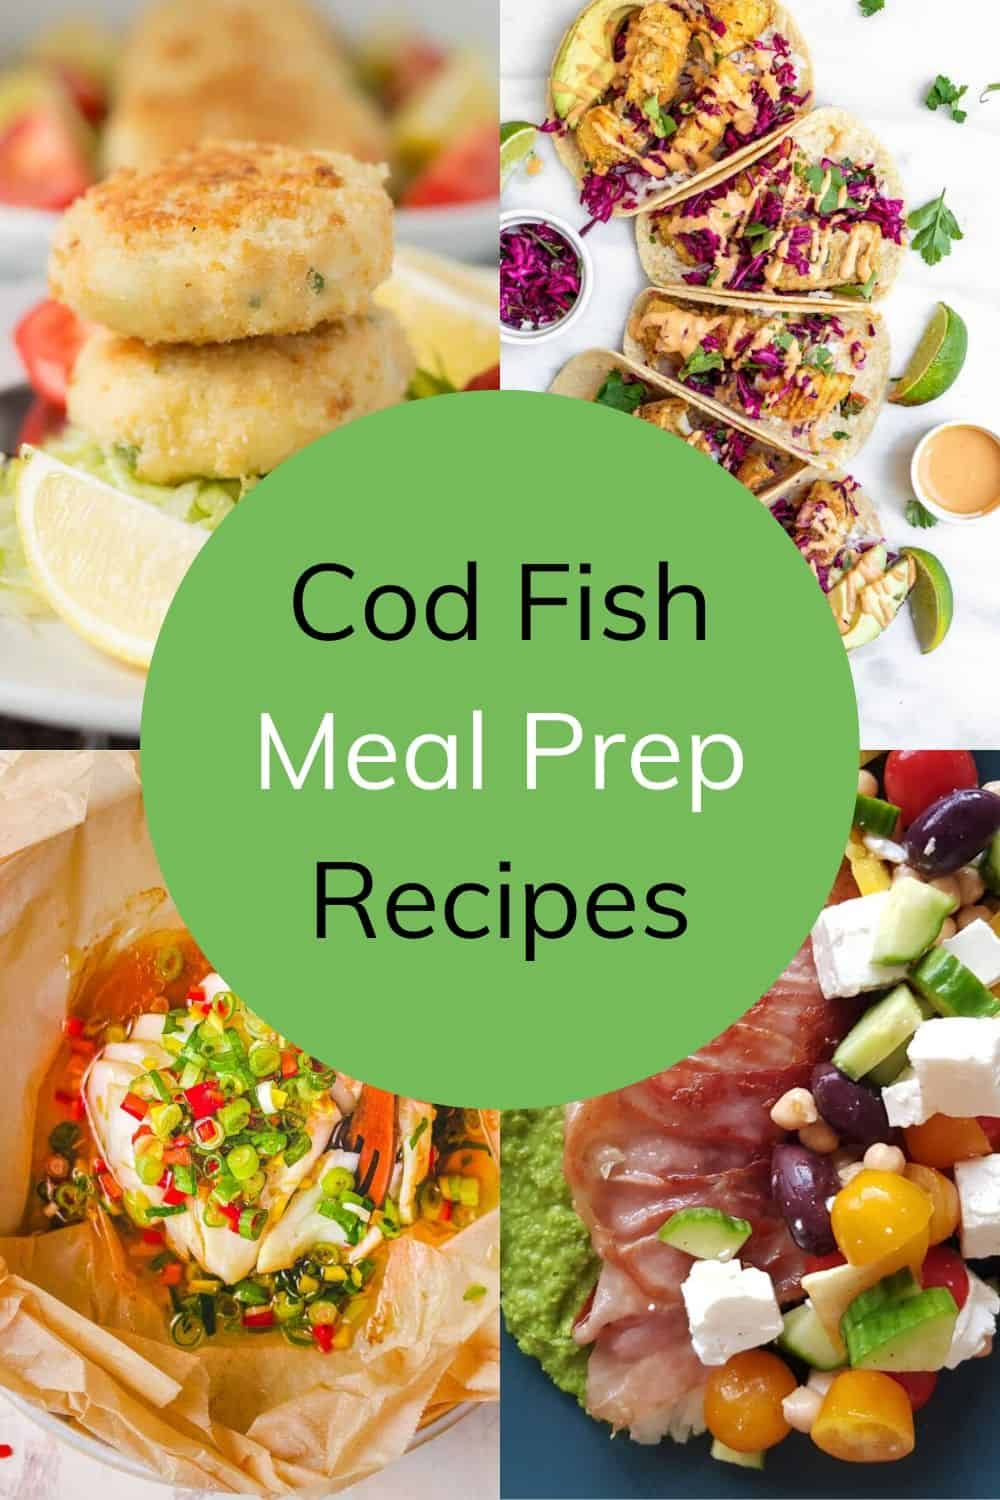 Cod meal prep recipes pinterest collage image.